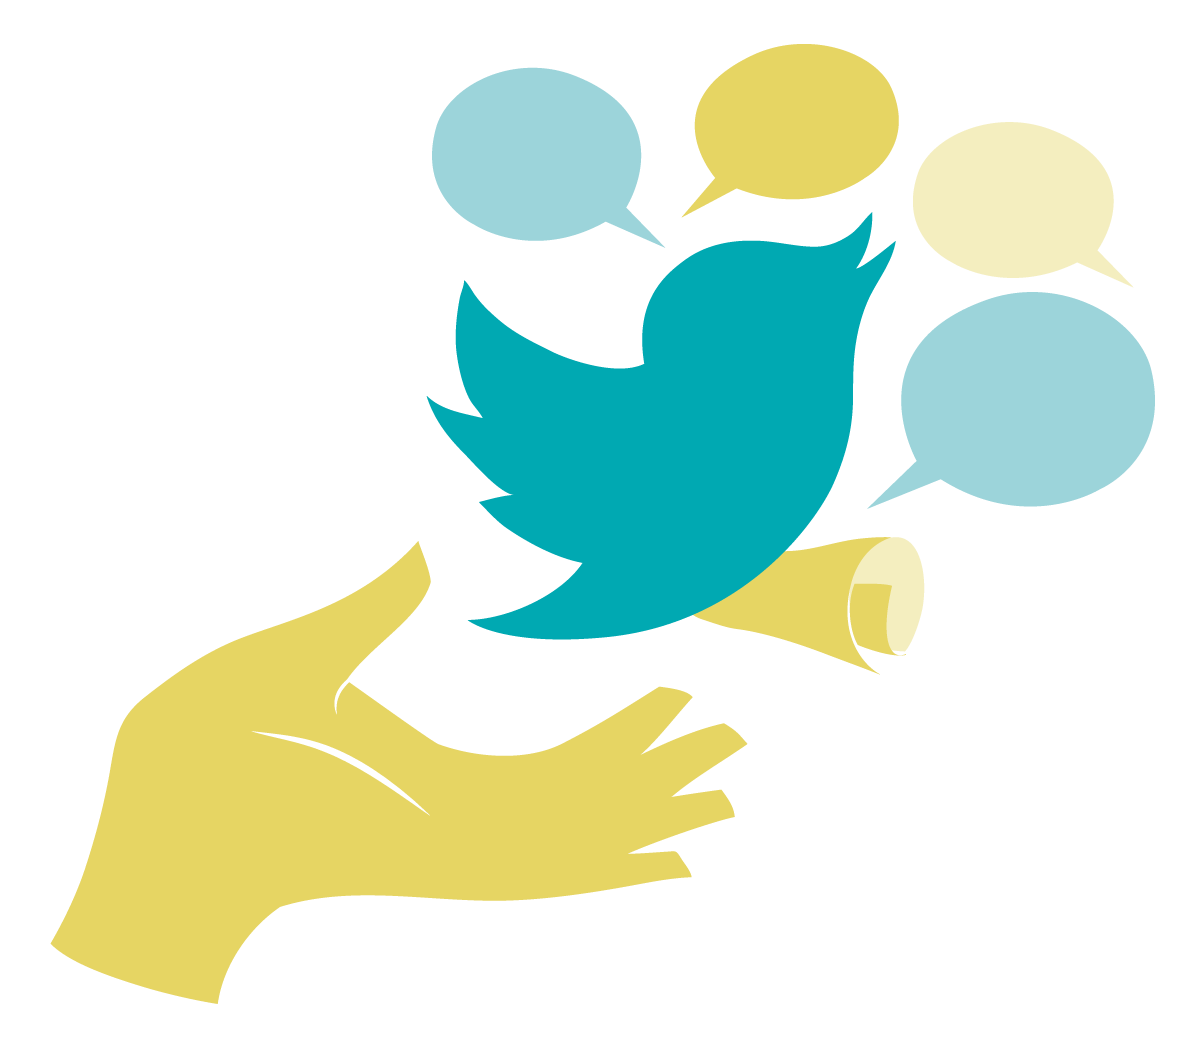 clipart twitter icon - photo #40